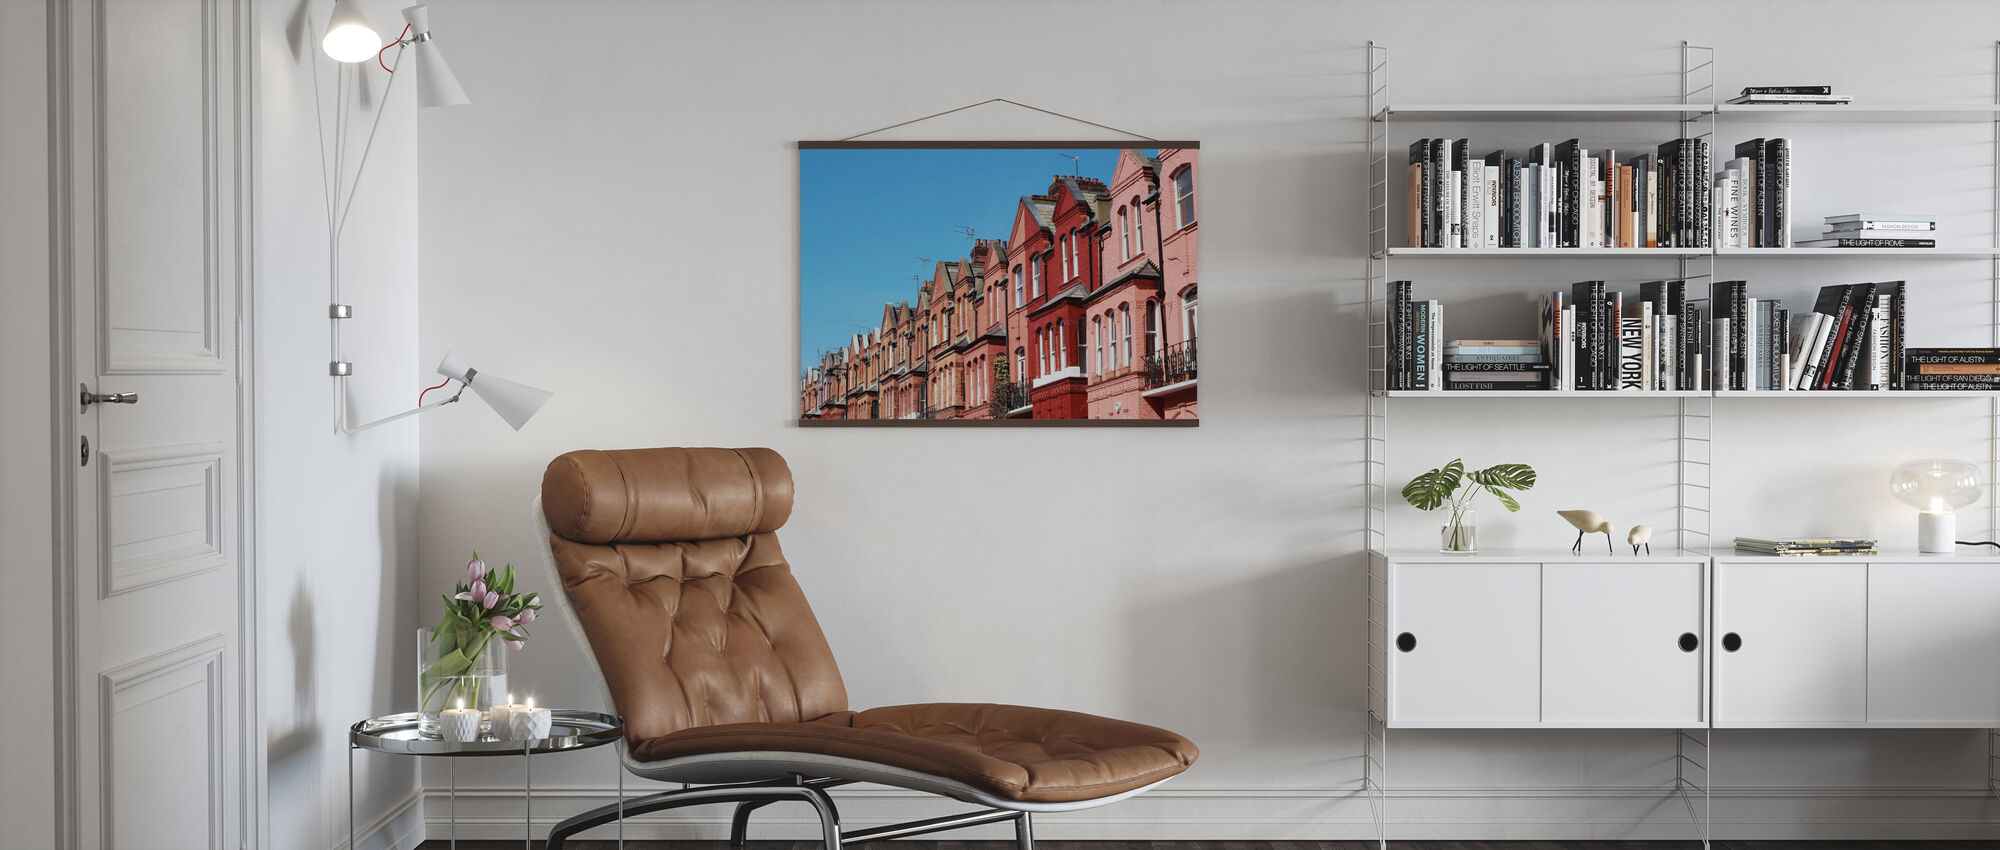 Coral Colored Houses in London - Poster - Living Room